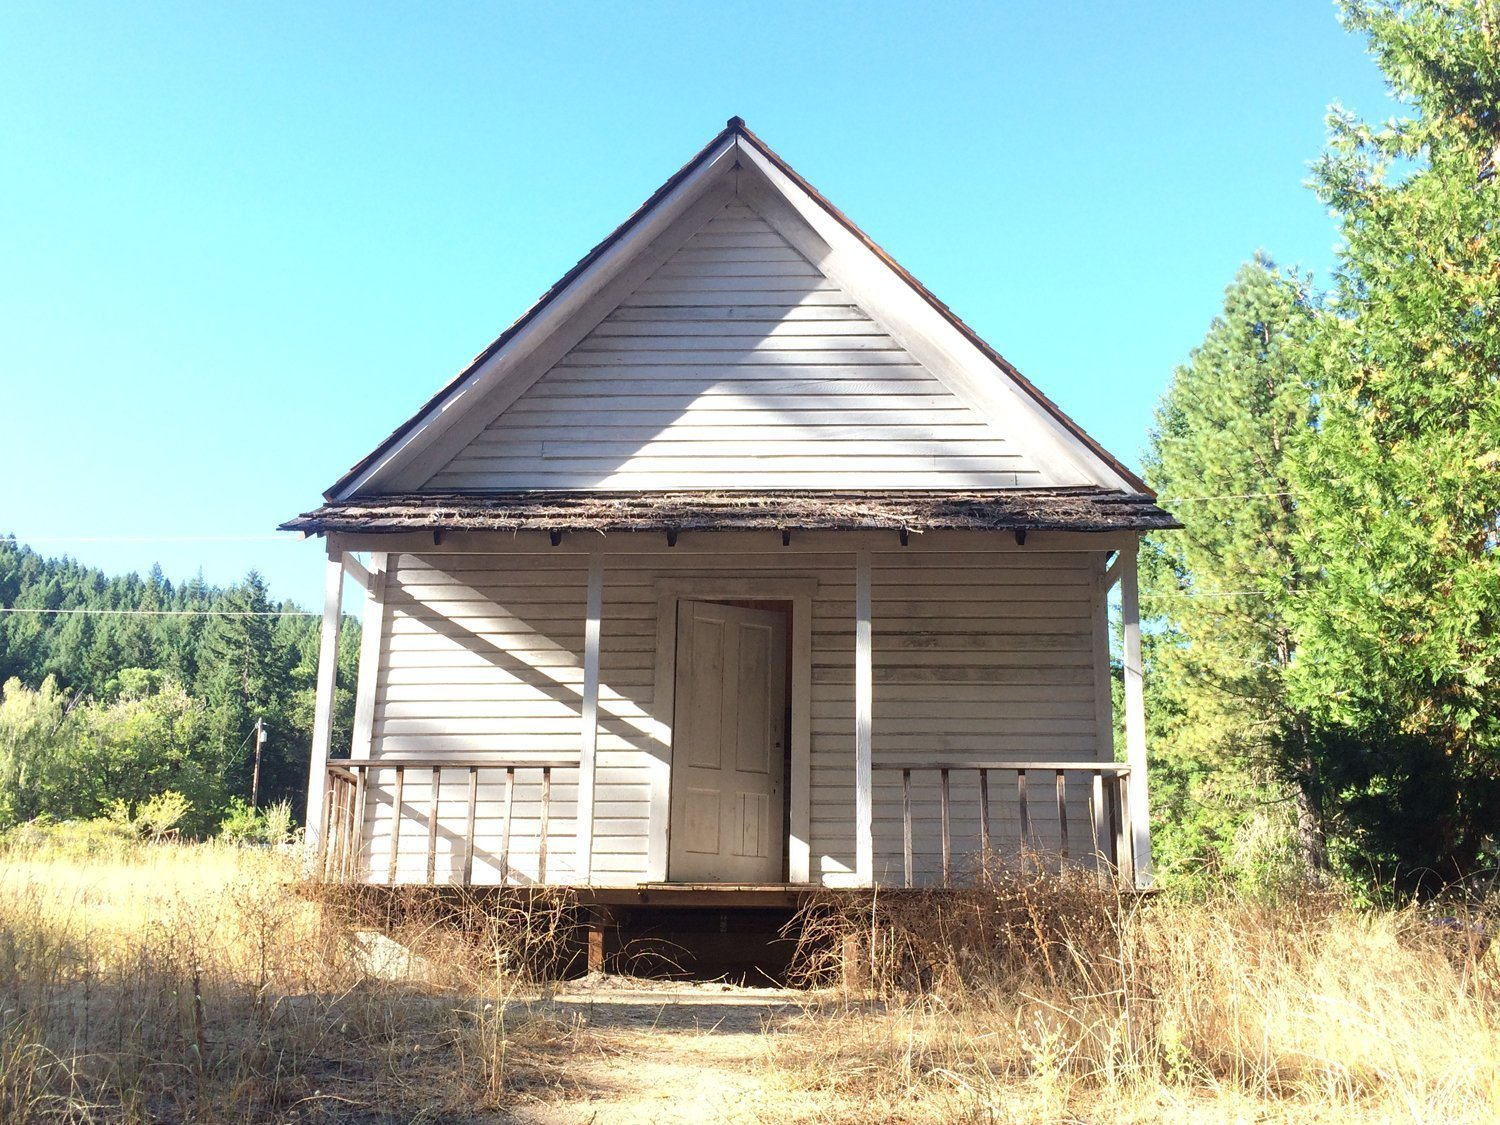 schoolhouse in Golden Oregon